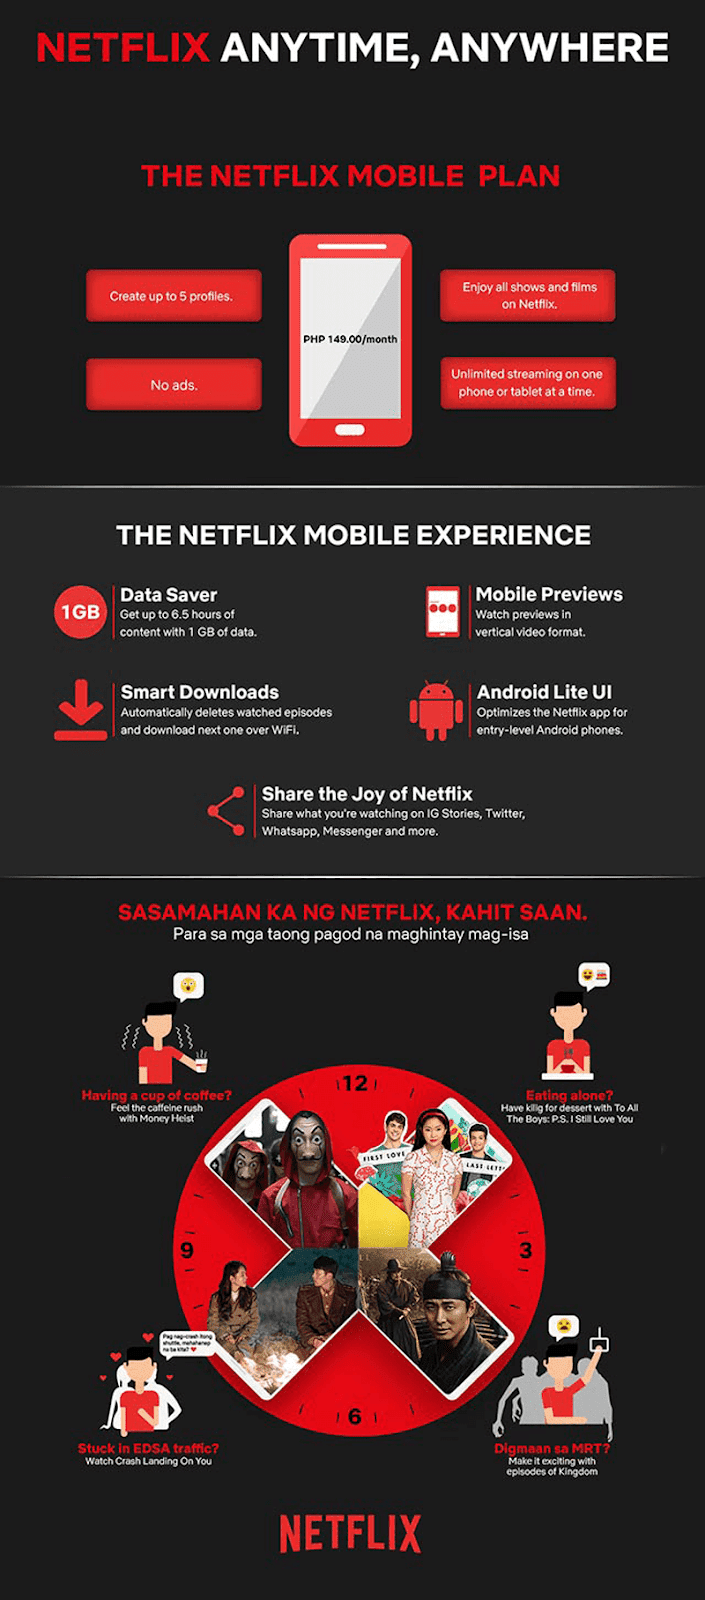 Features of the new mobile plan from Netflix